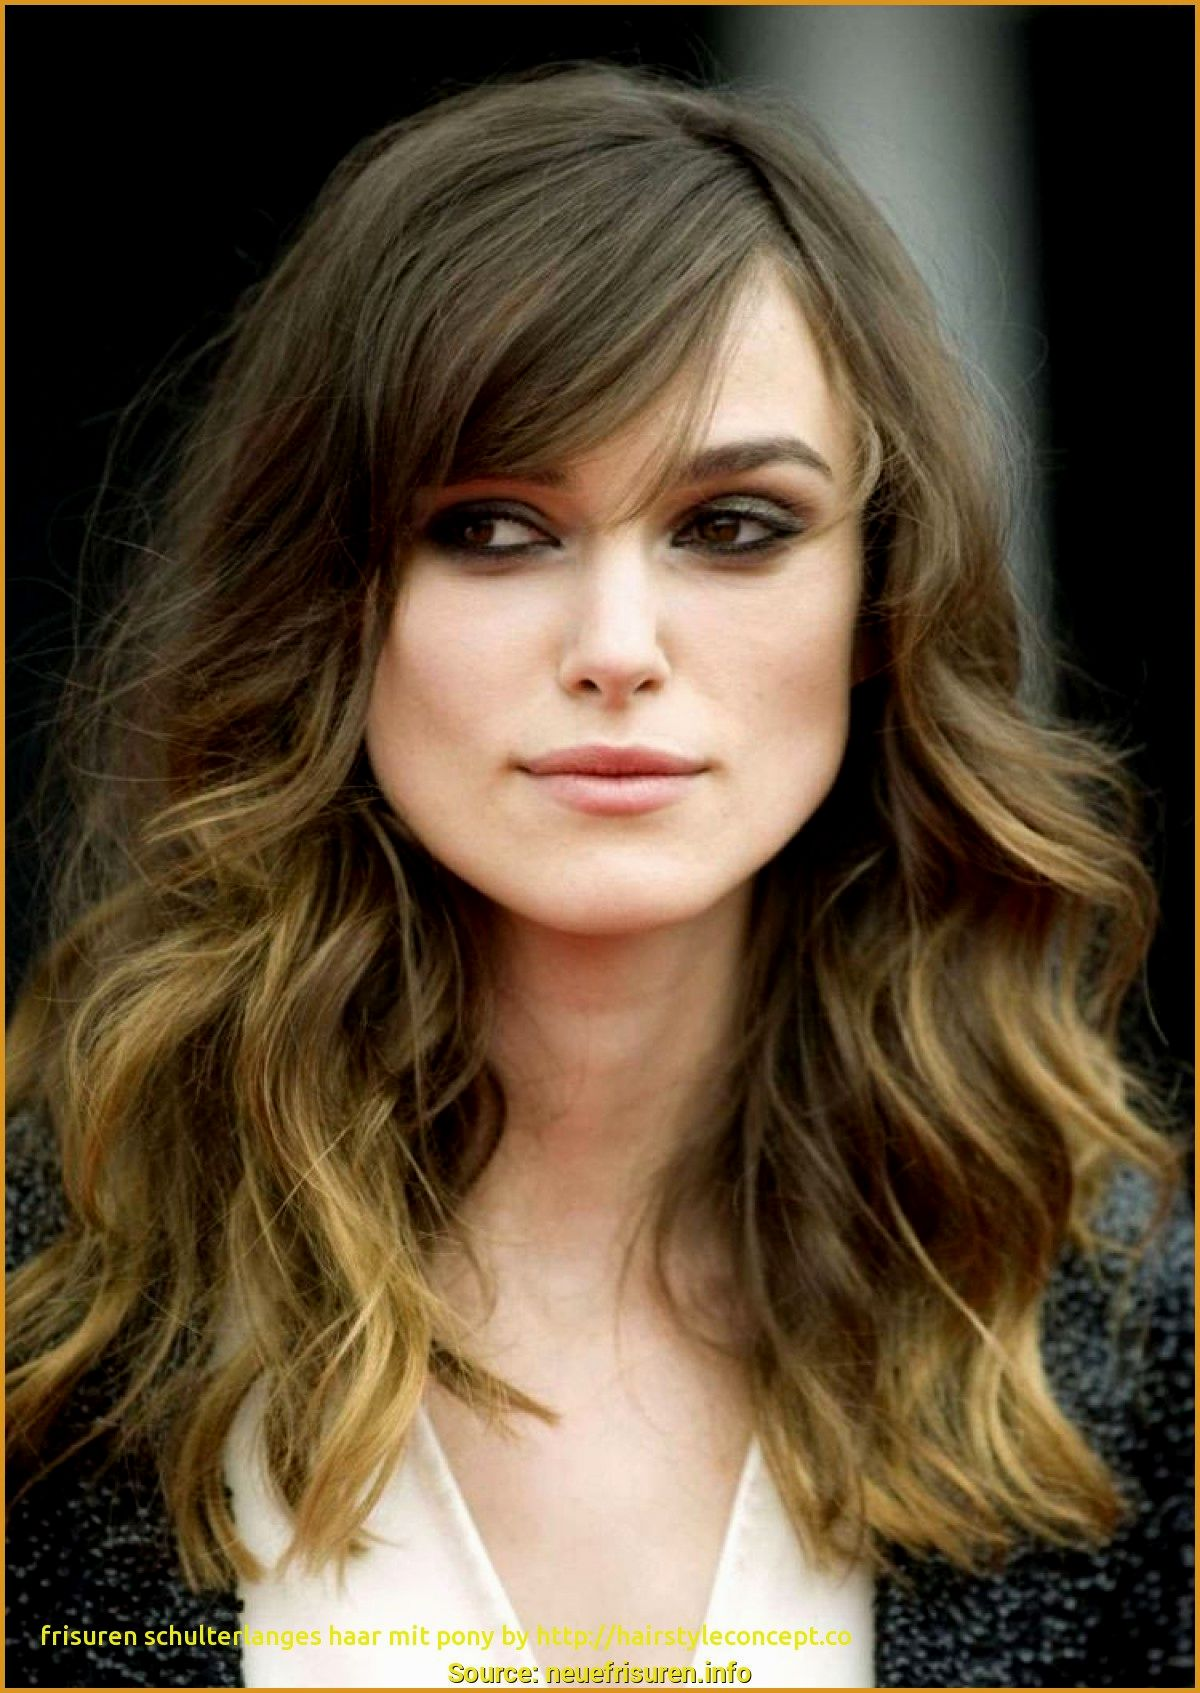 luxury shoulder-length hair with pony pattern-superb shoulder-length hair with pony inspiration